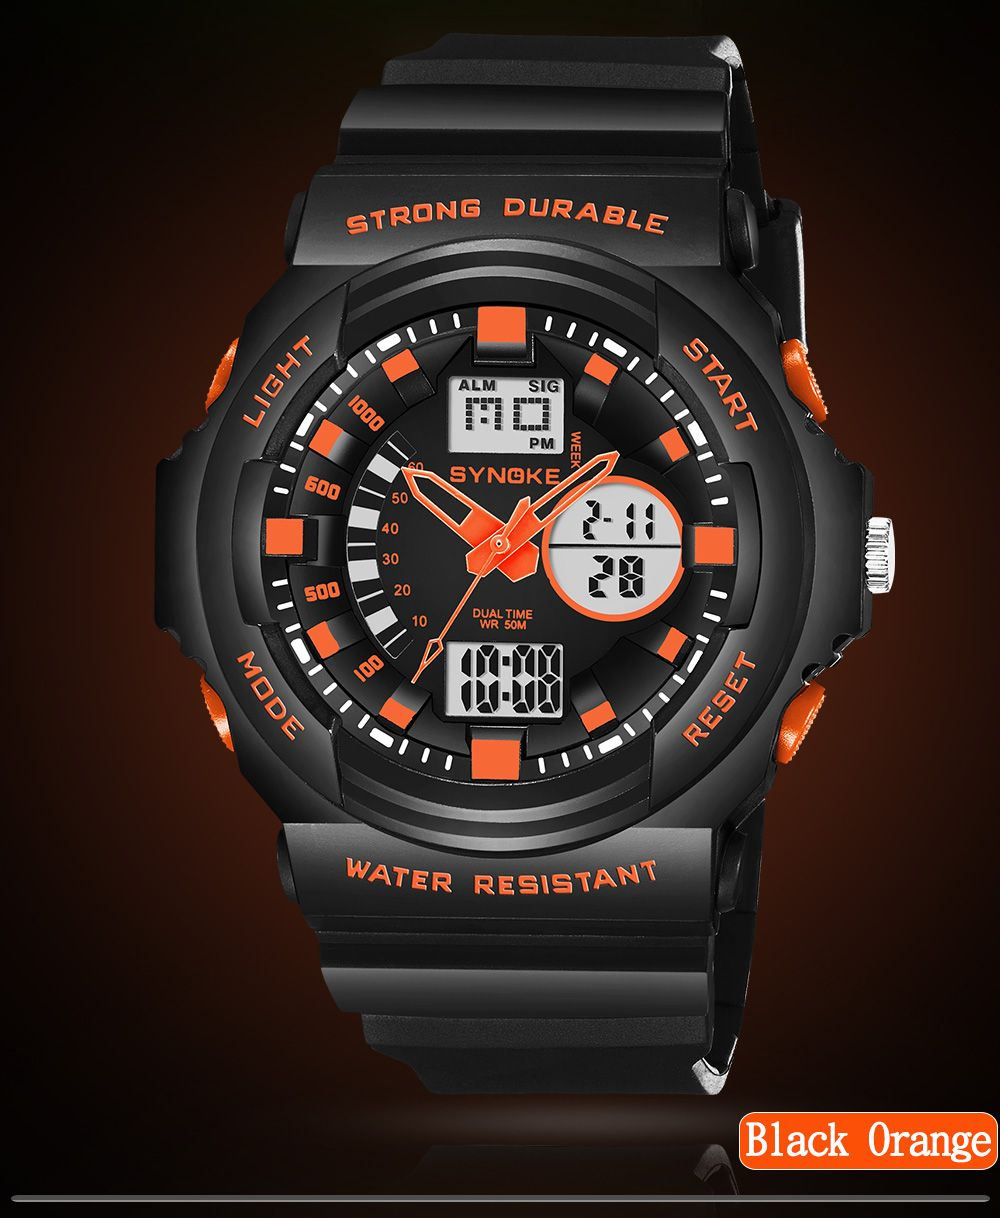 SYNOKE66866Outdoor Climbing Waterproof Electronic Watch Man